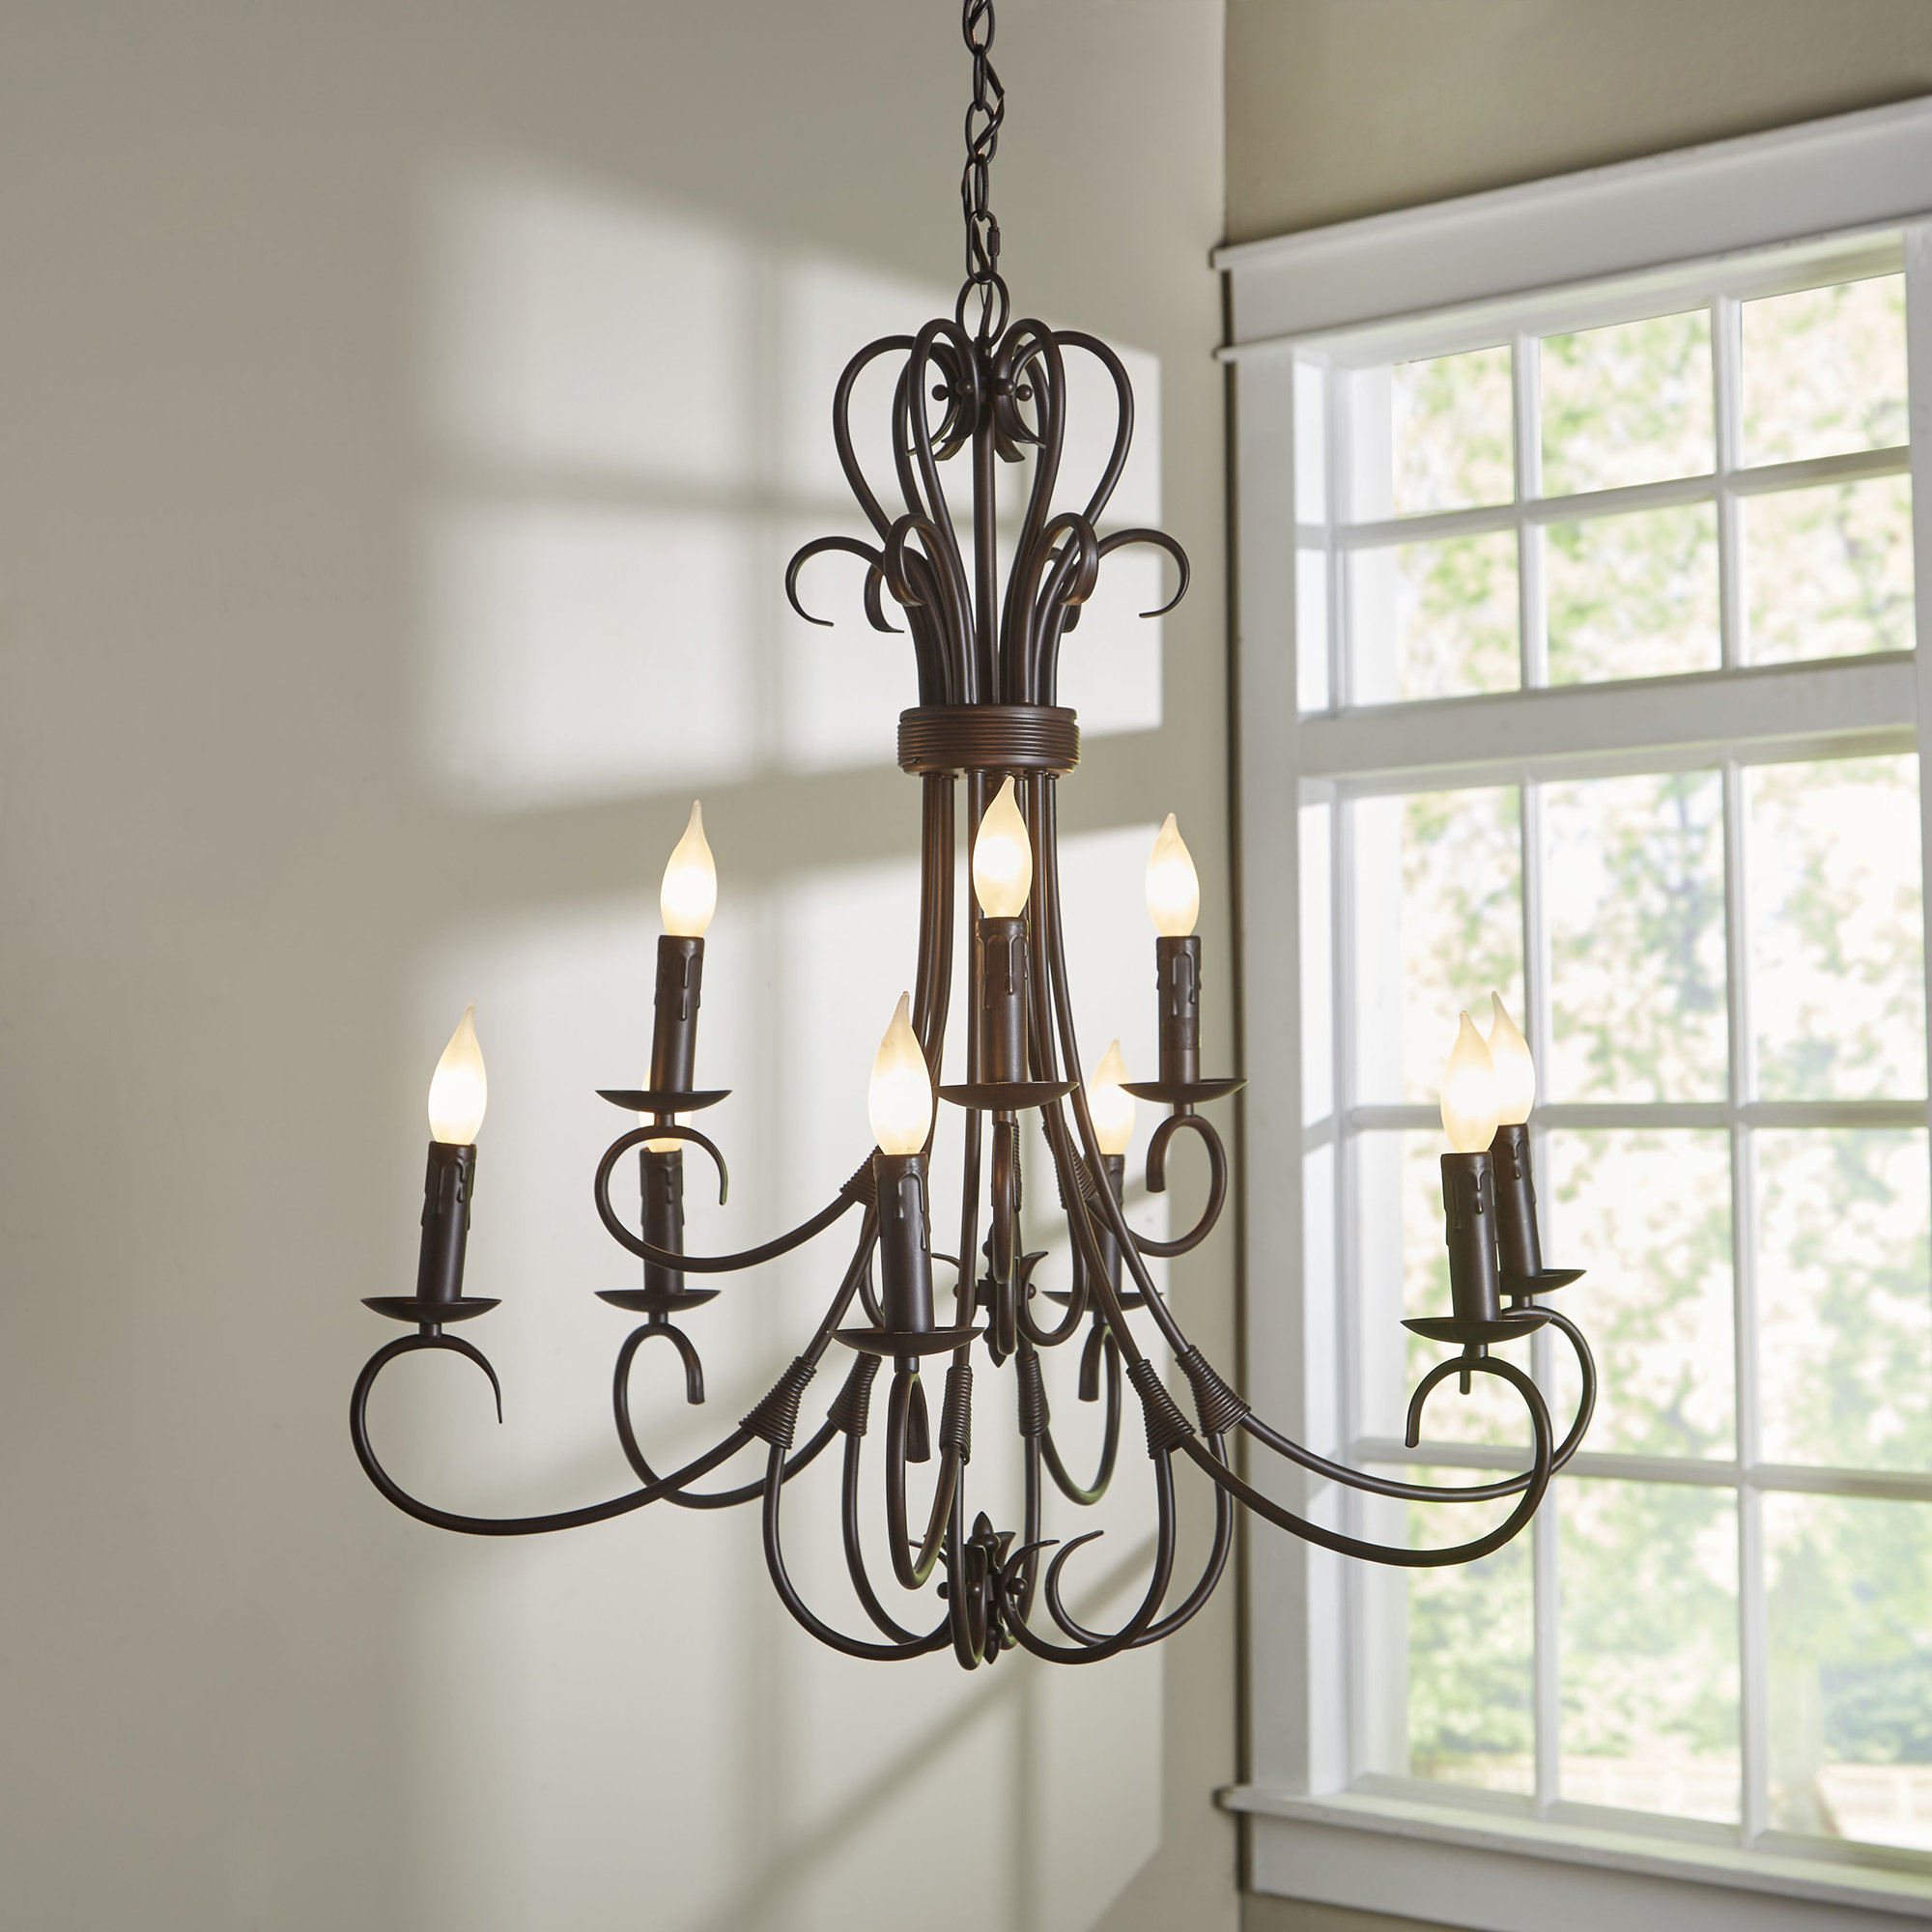 Newest Gaines 9-Light Candle-Style Chandelier regarding Gaines 9-Light Candle Style Chandeliers